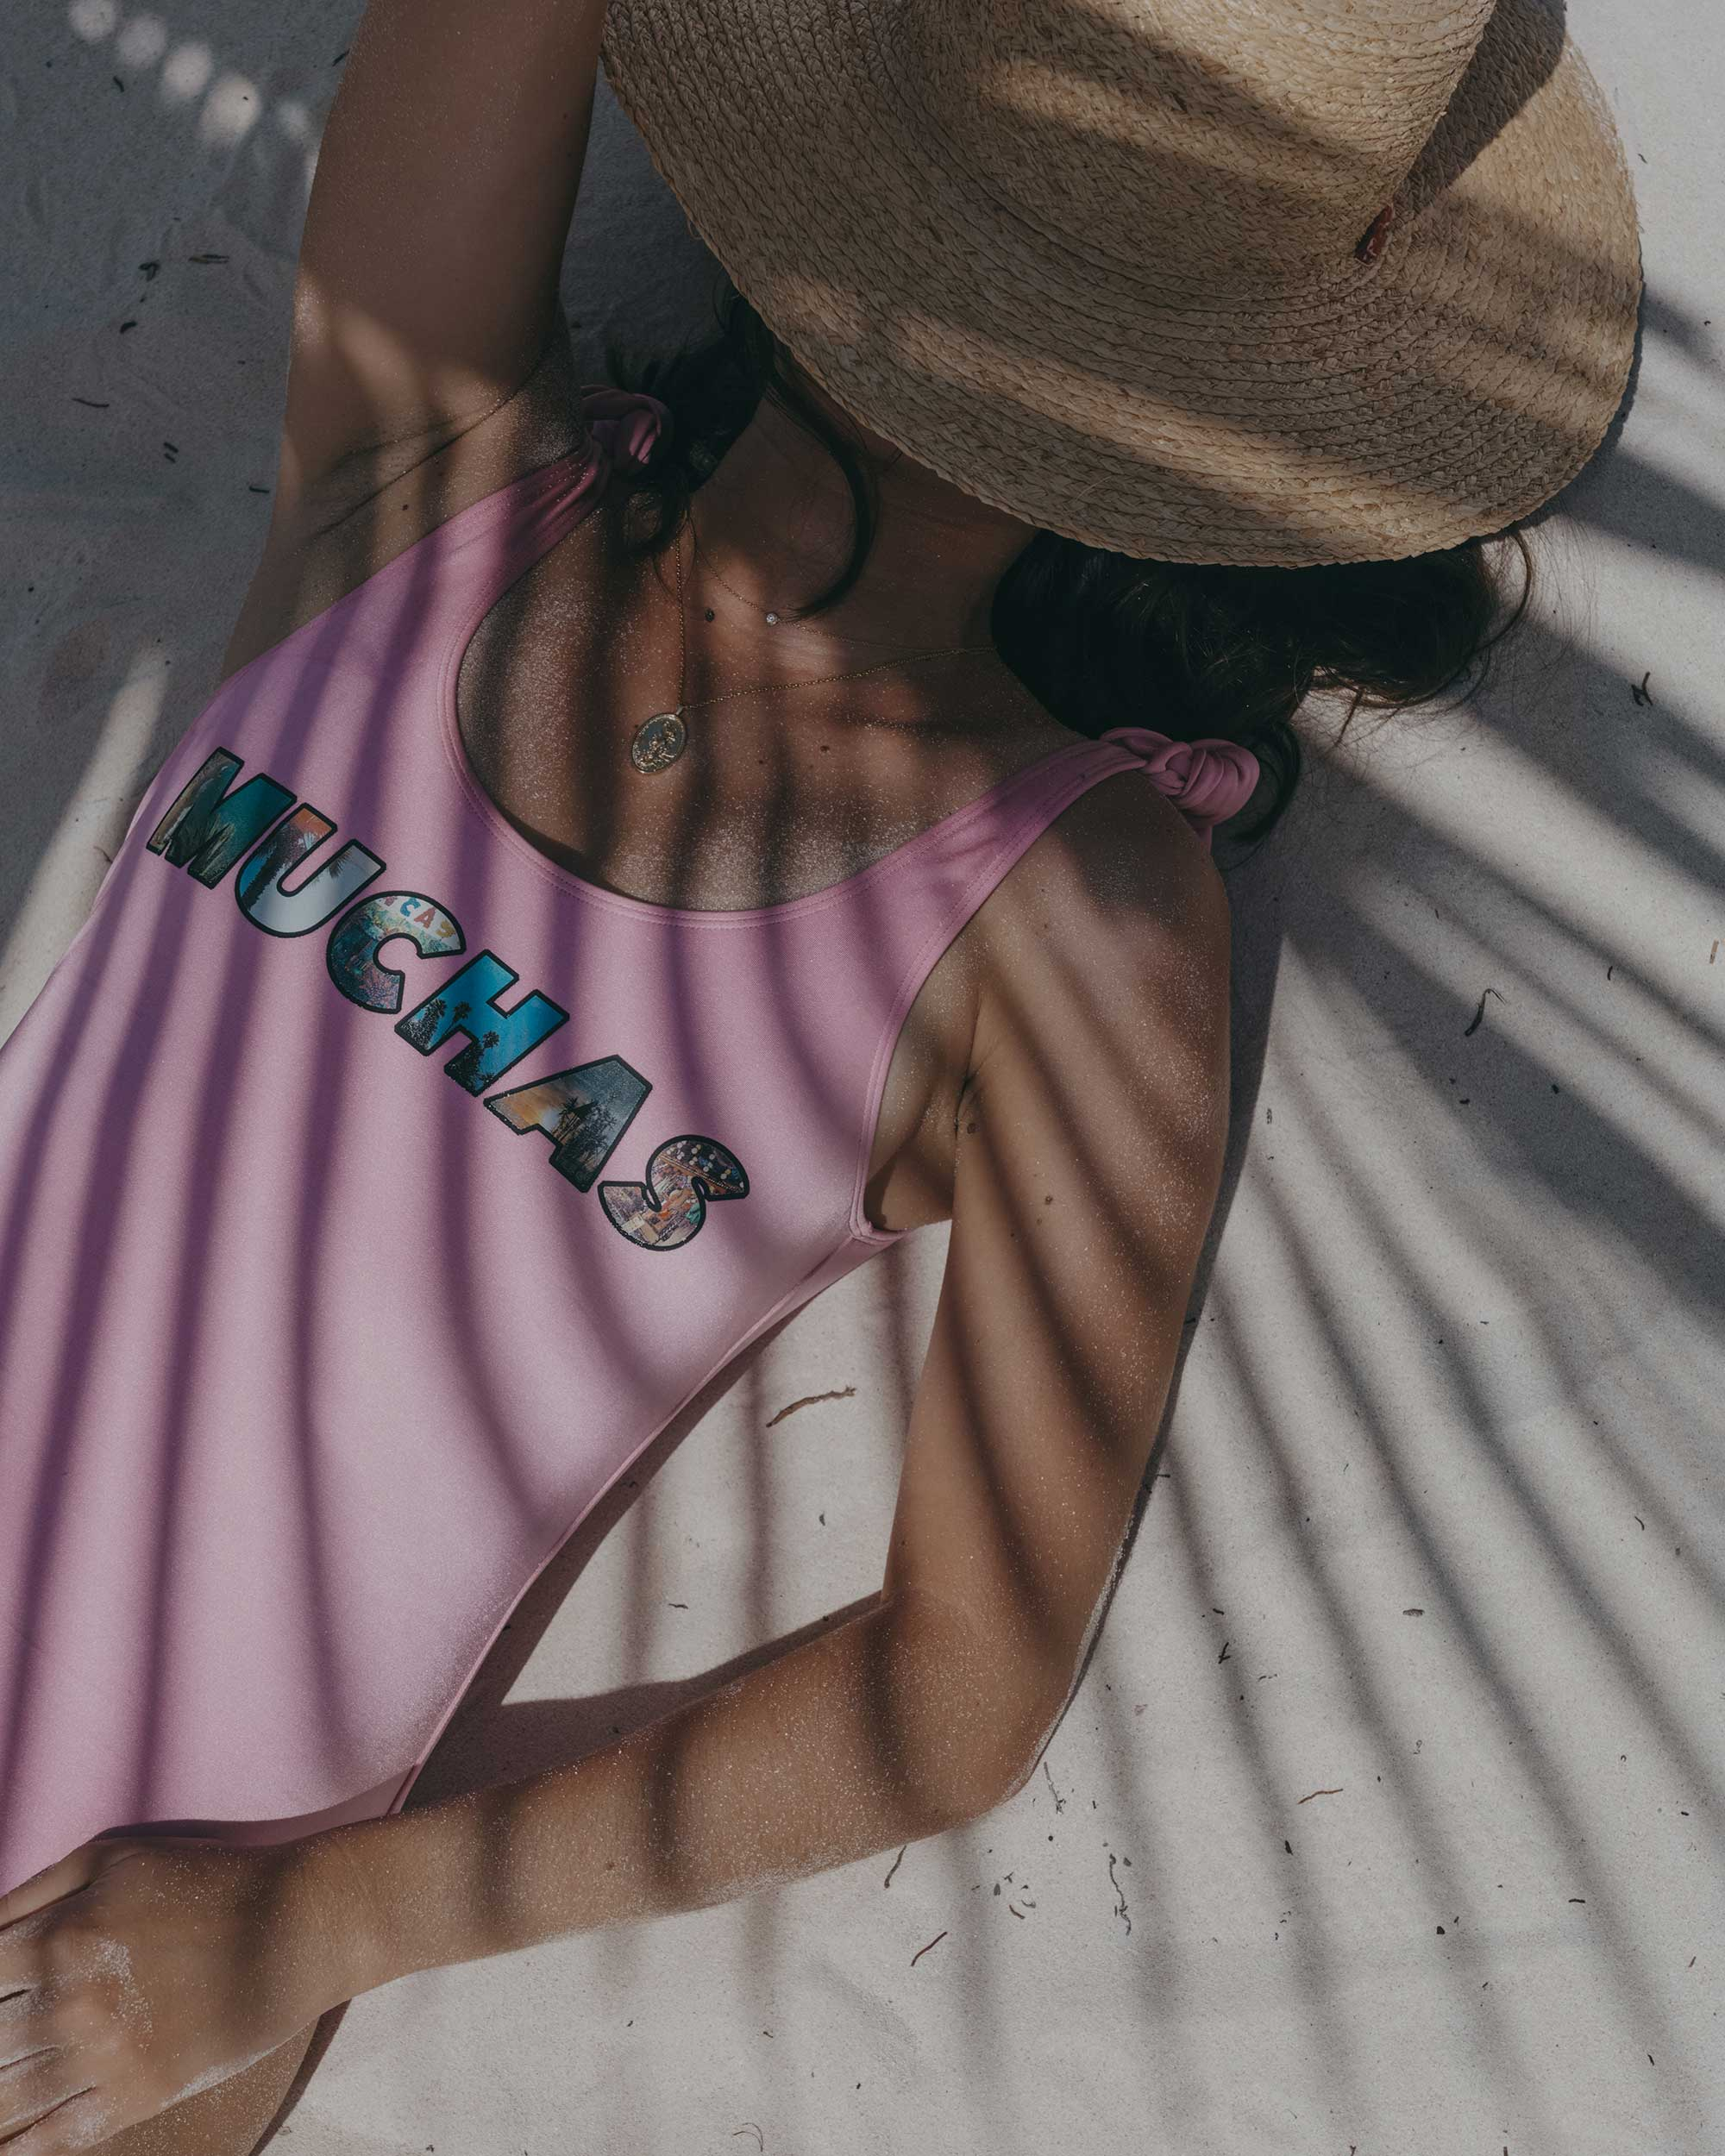 pink one piece swimsuit reading muchas dominican republic beach outfit5.jpg